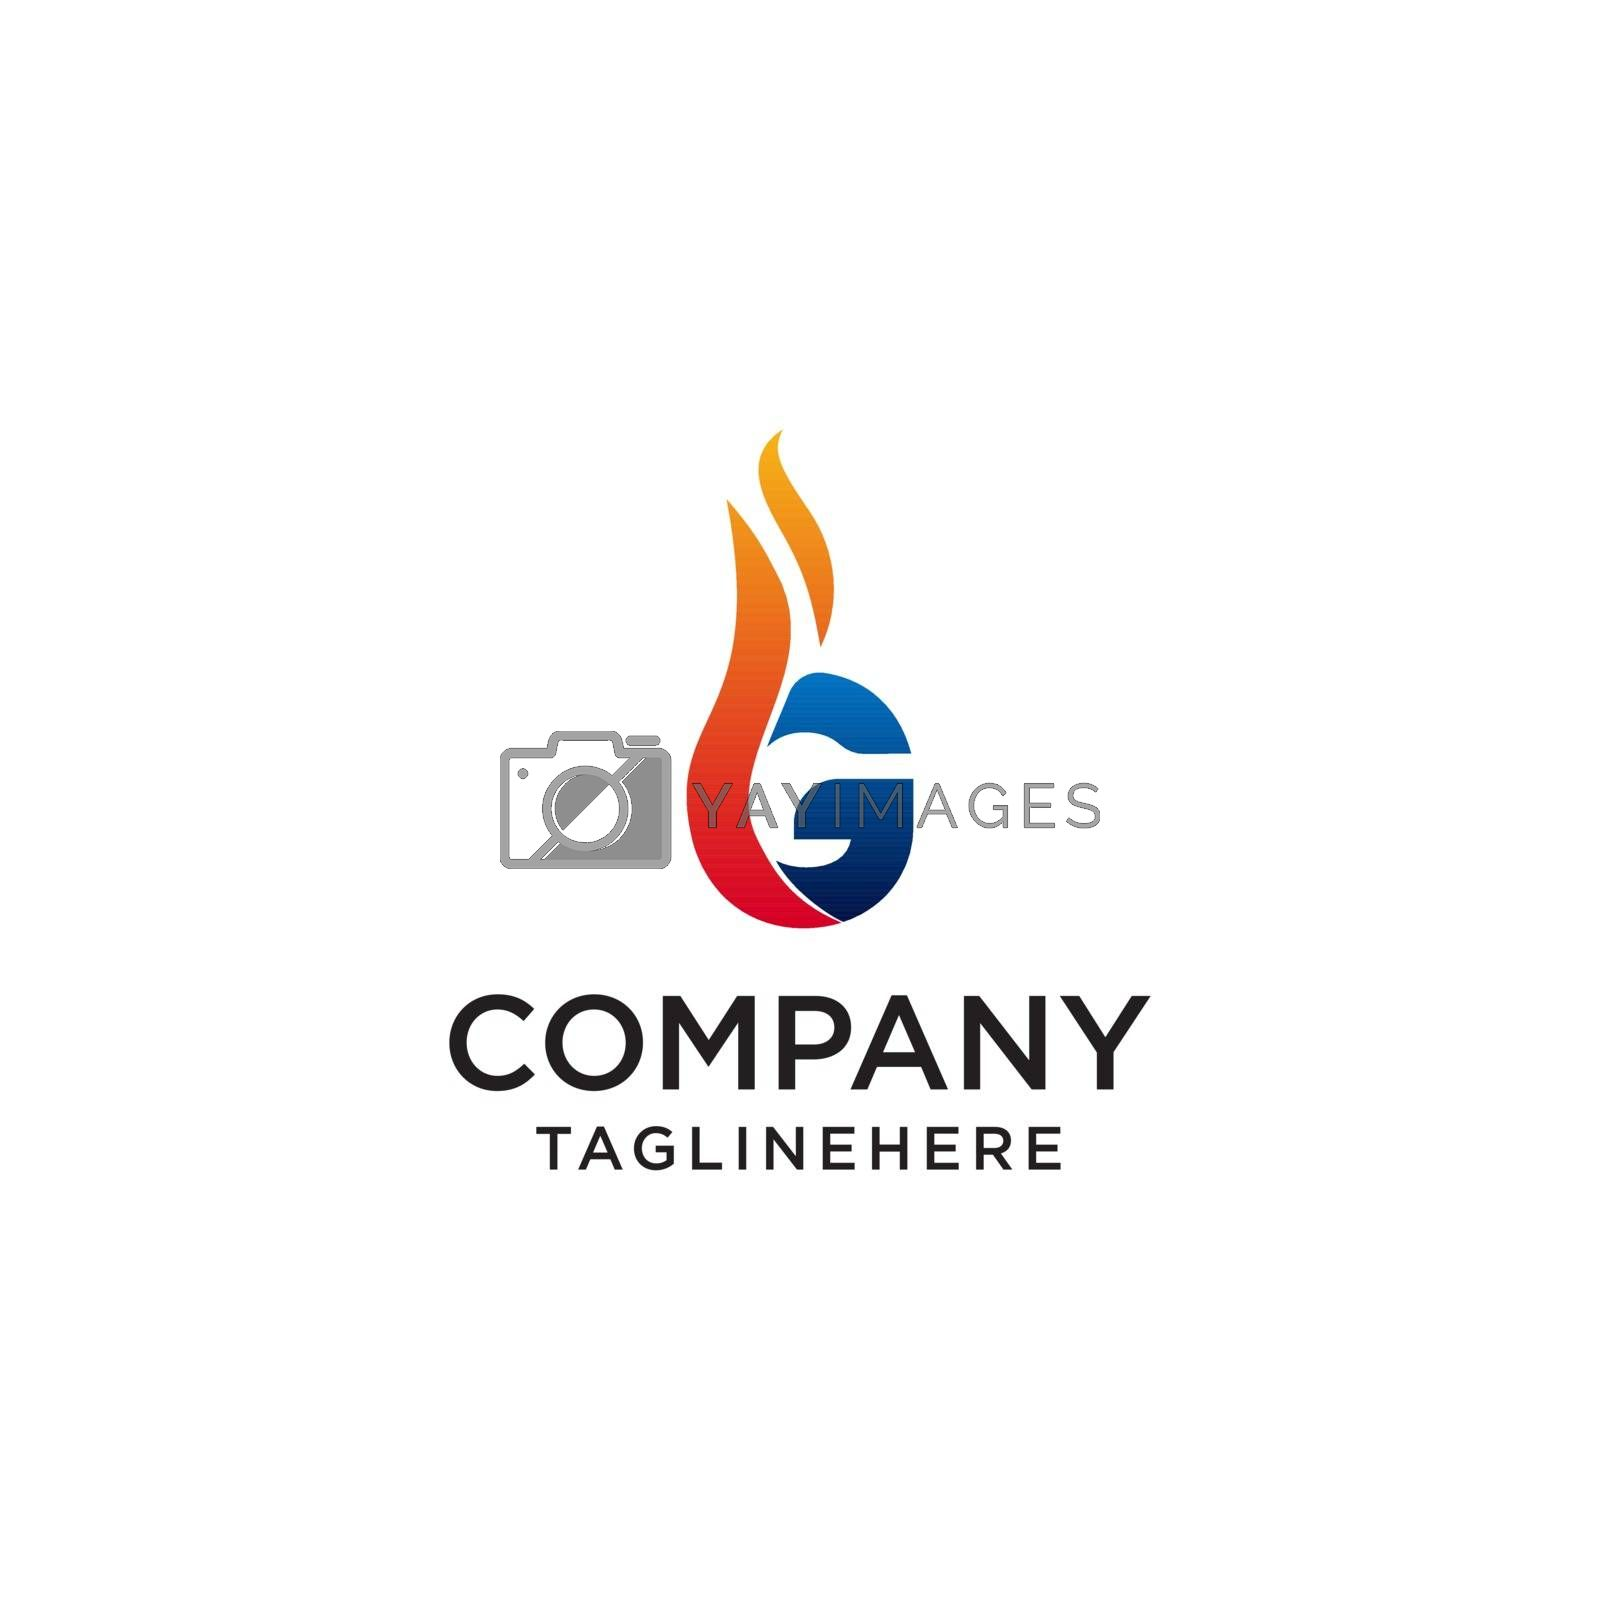 initial Letter G fire logo design. fire company logos, oil companies, mining companies, fire logos, marketing, corporate business logos. icon. vector